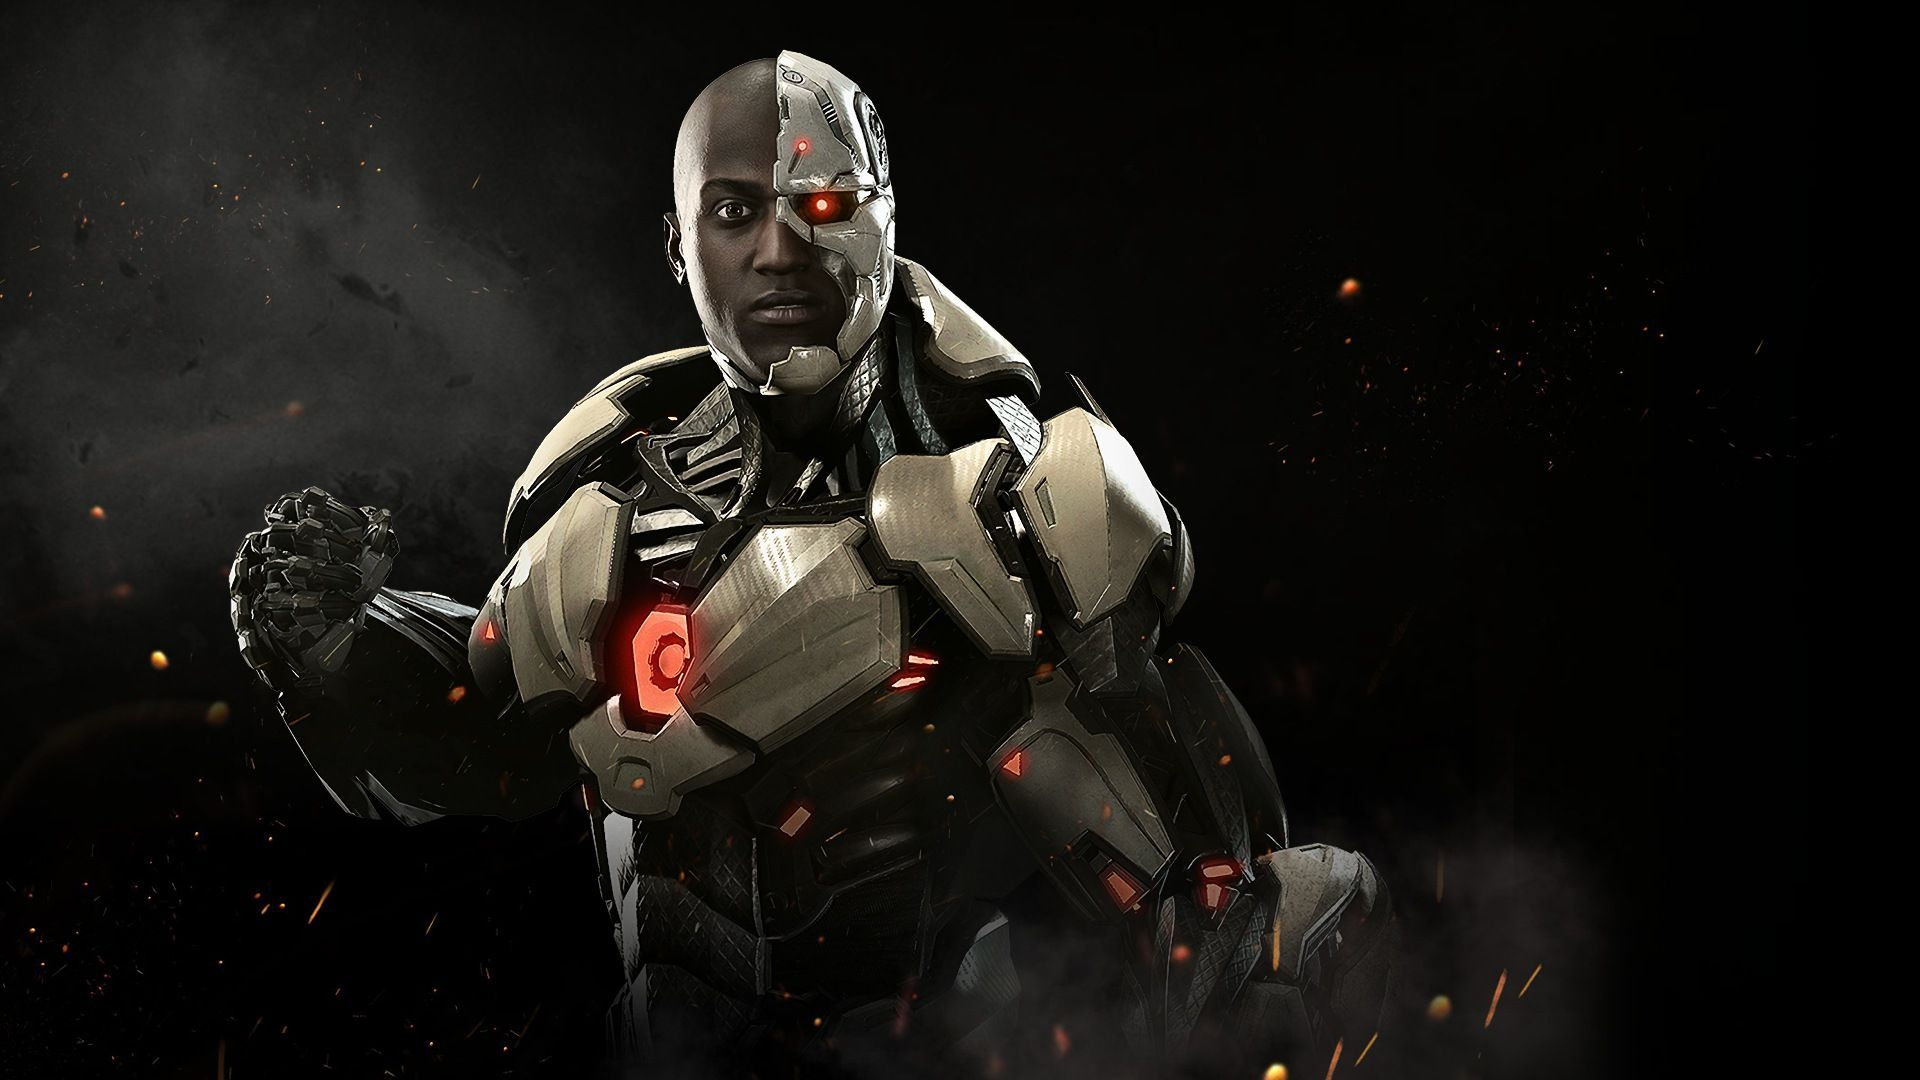 Cyborg Hd Wallpapers Injustice Game Injustice 2 Game